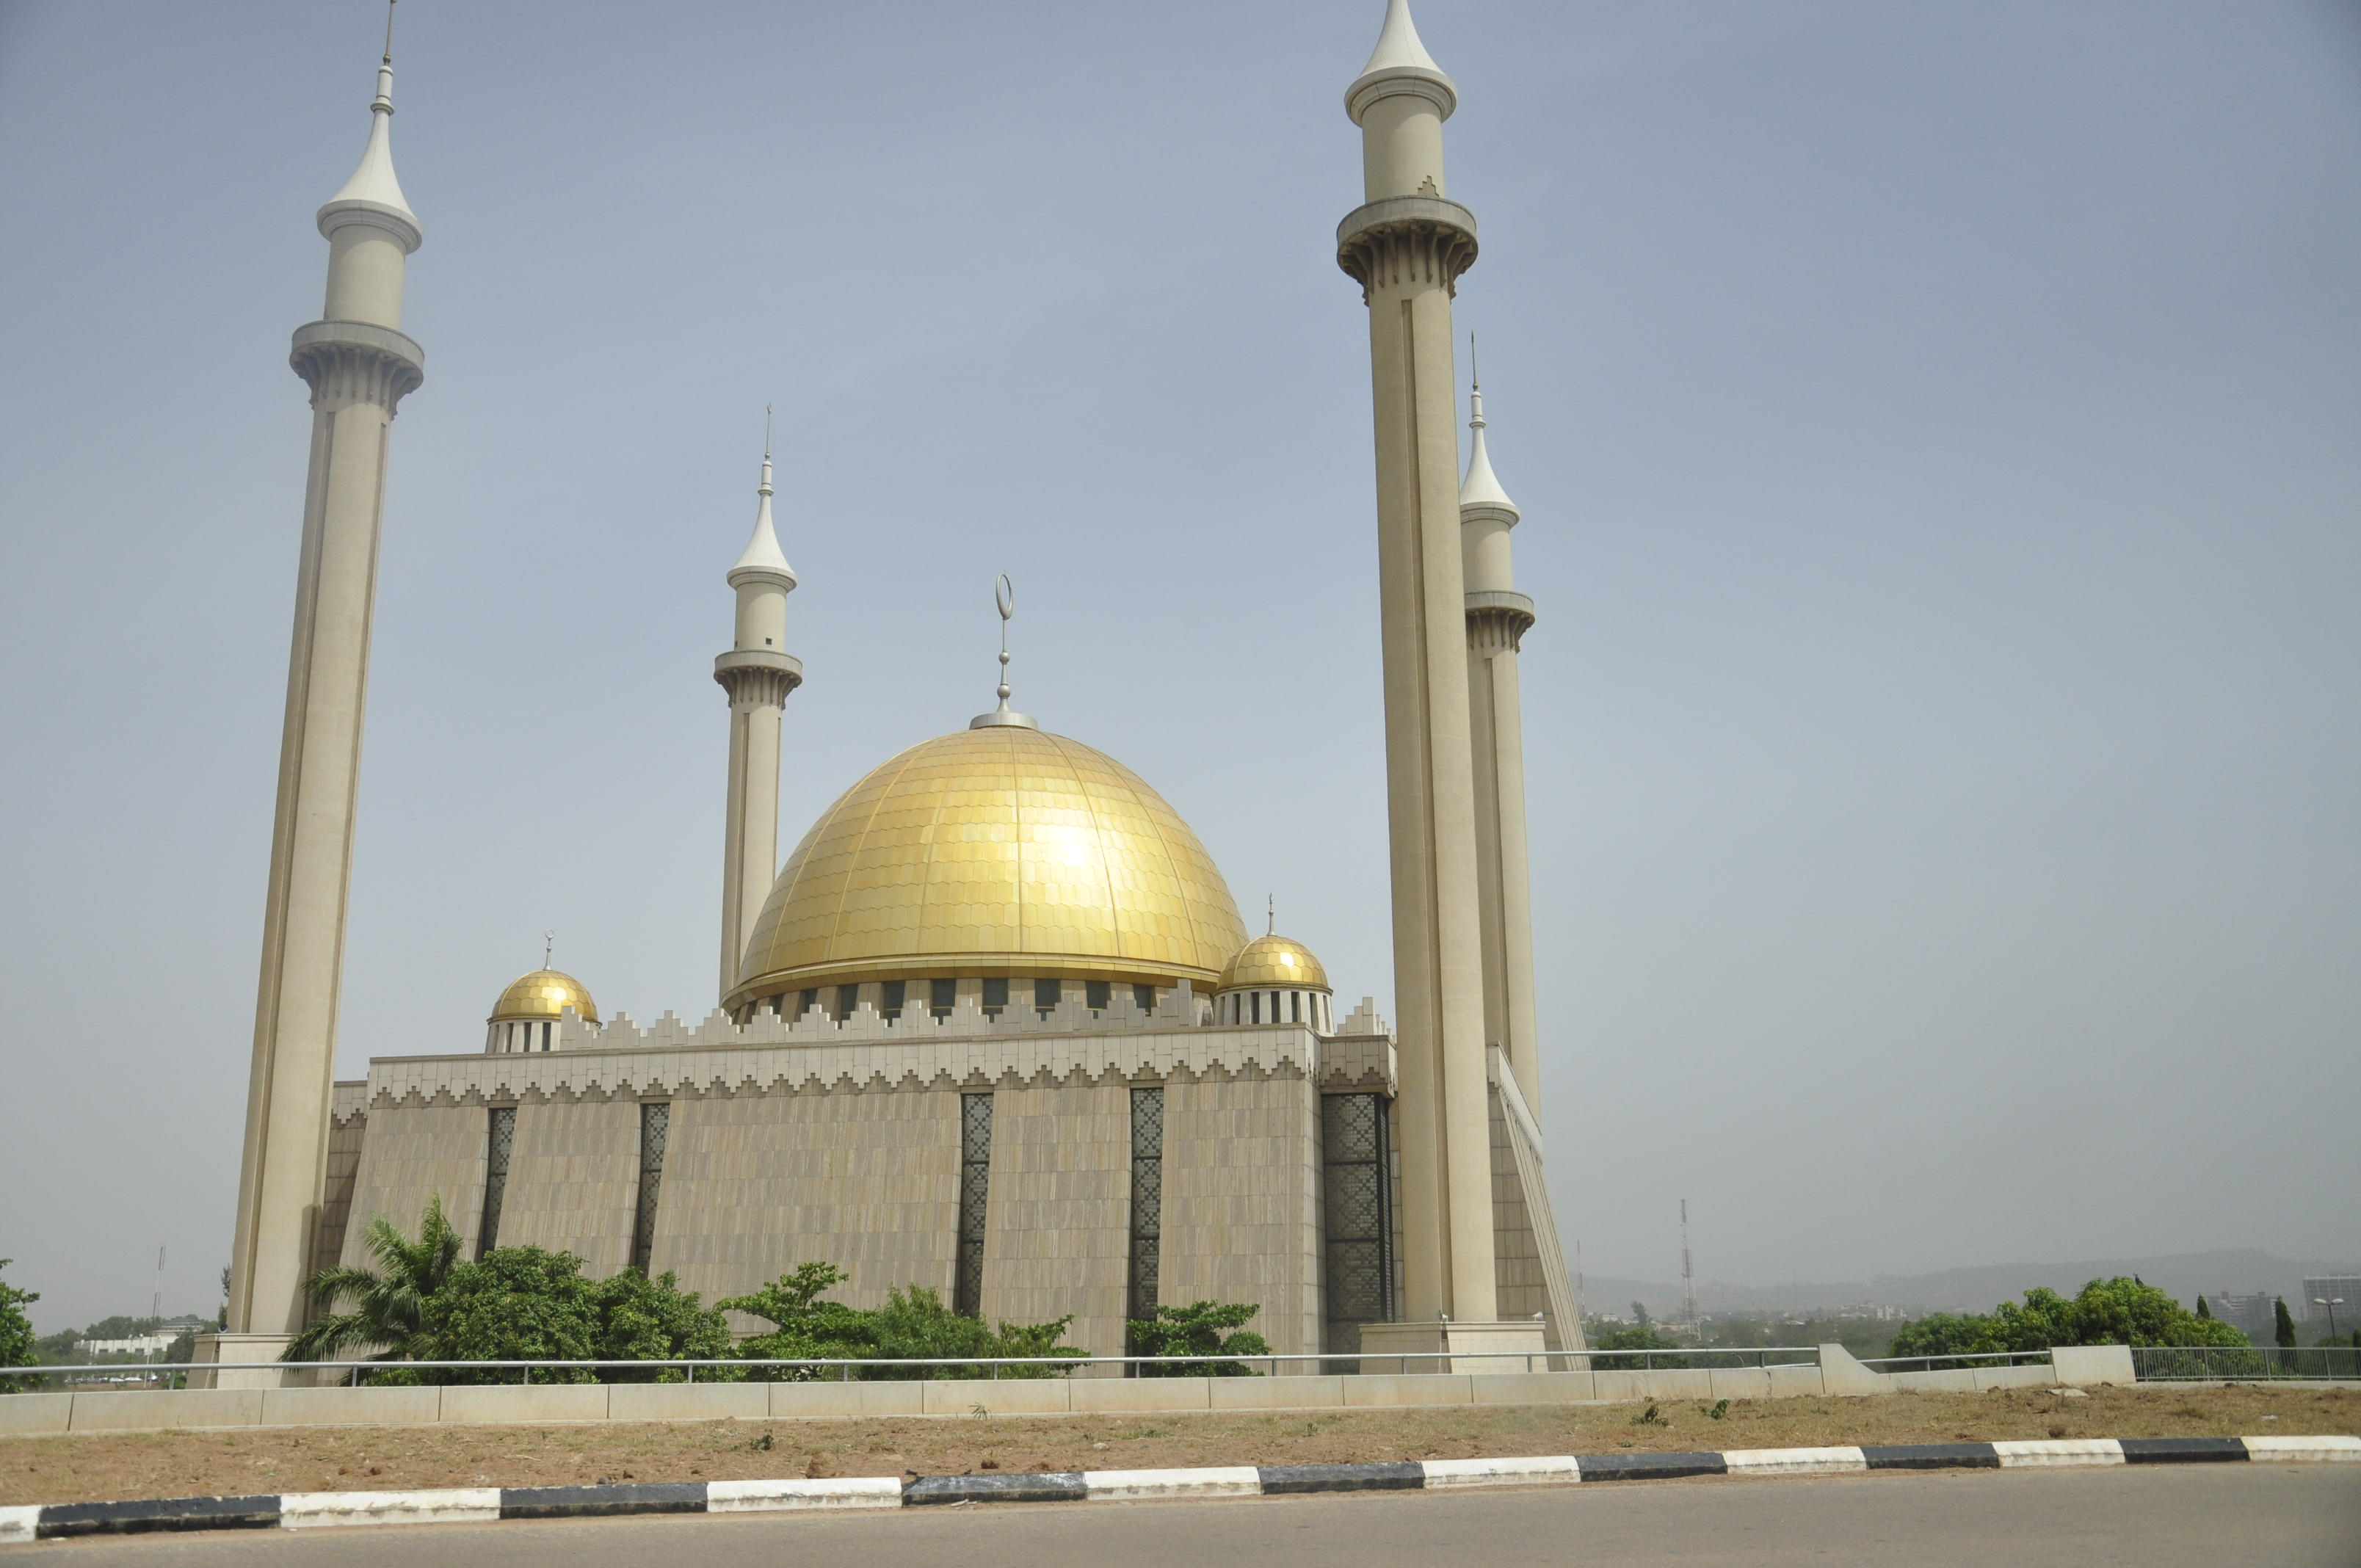 3216x2136 > Abuja National Mosque Wallpapers